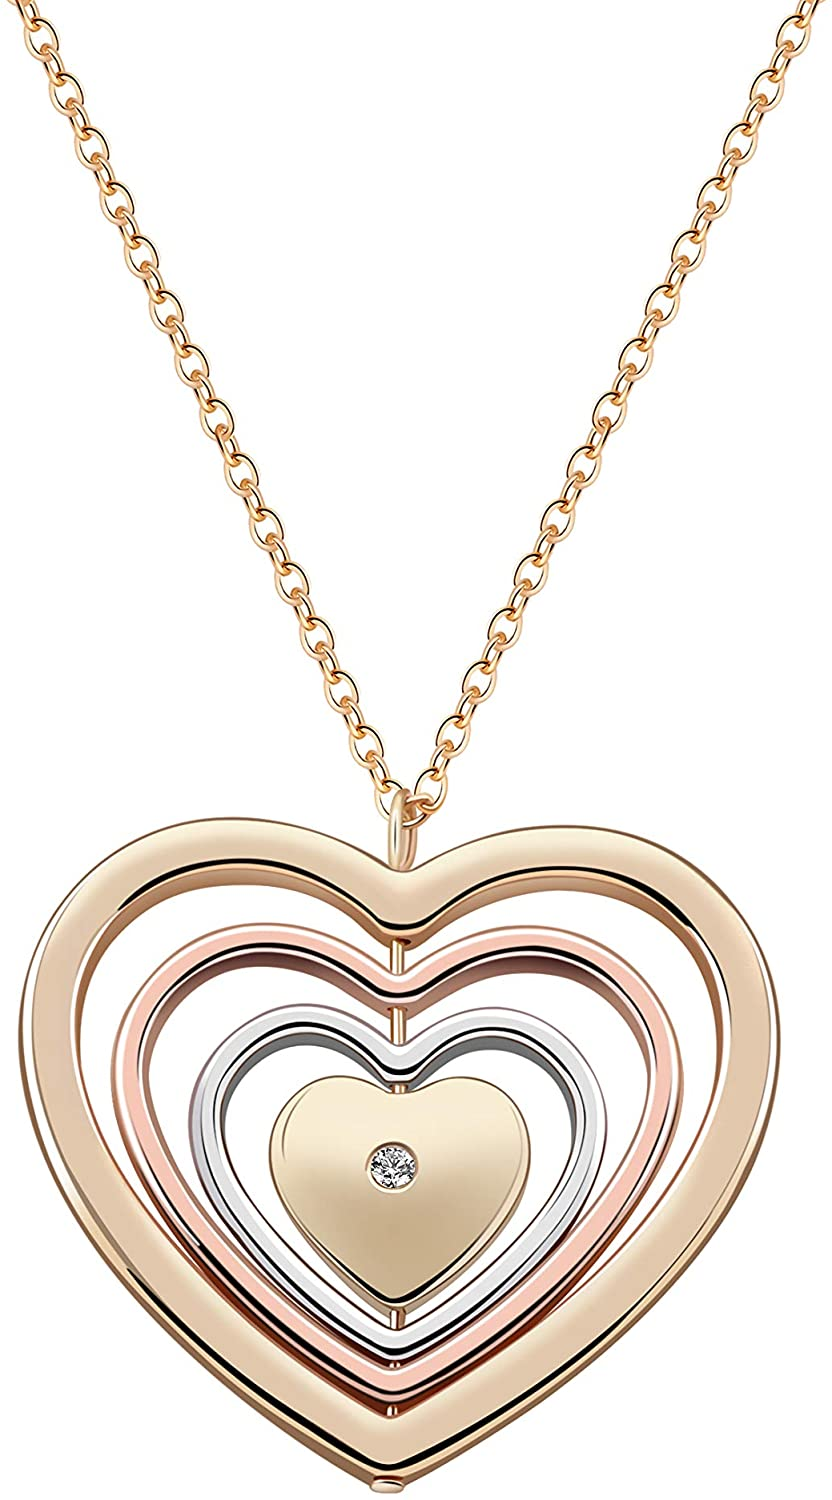 HUAYUAN Heart Long Necklace Mixed Plated Rotatable Love Heart Pendant Necklace for Women Girls